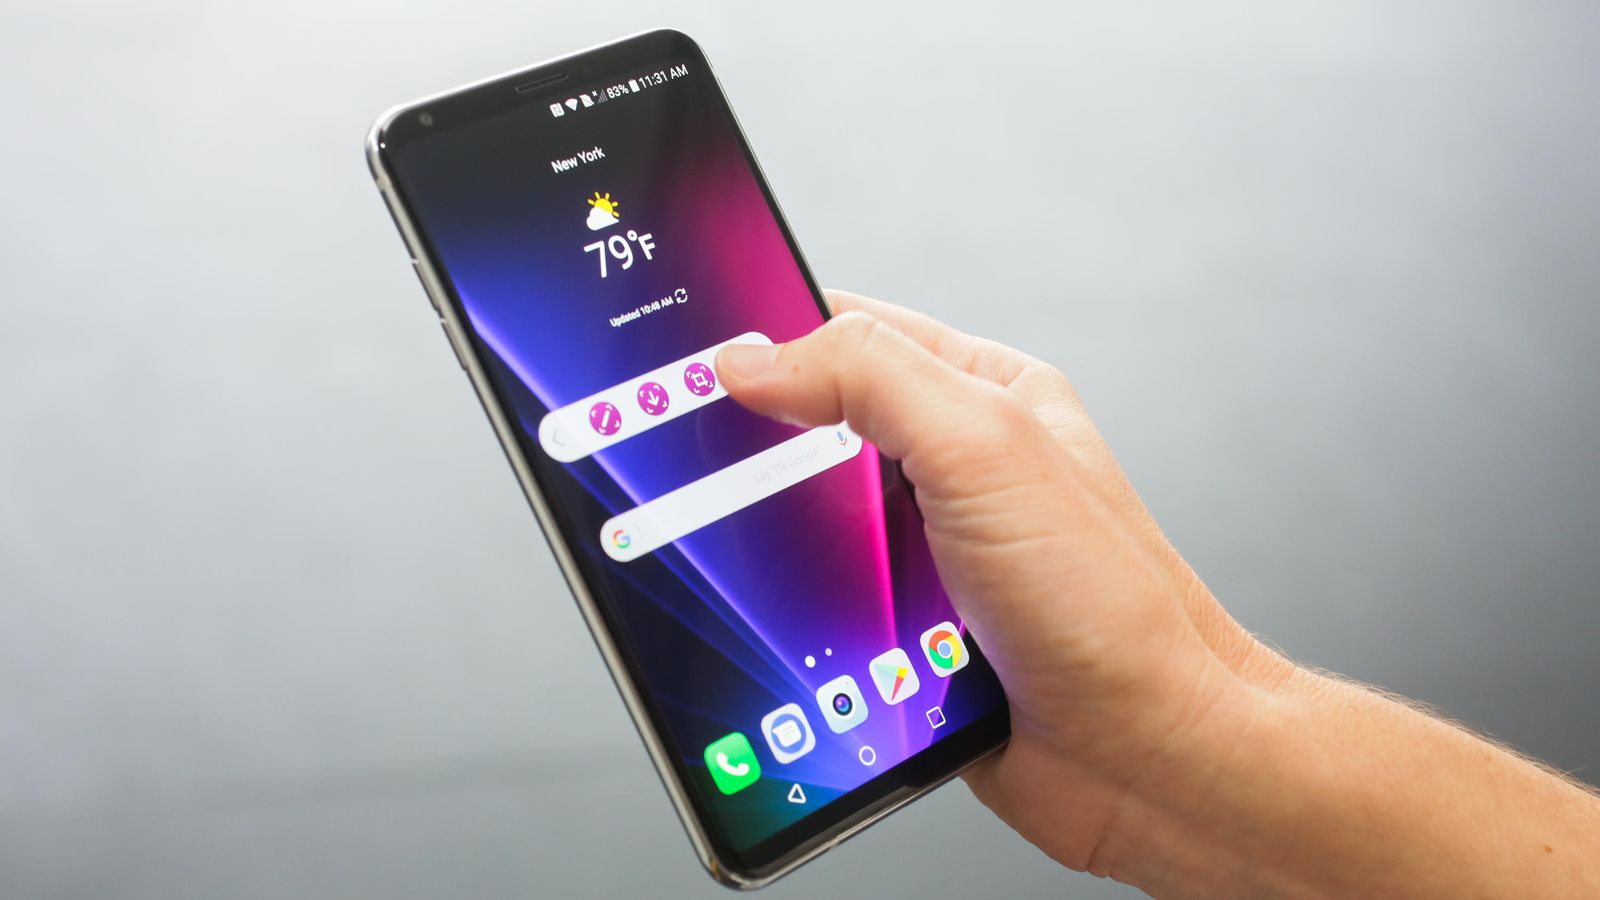 Discussion on this topic: LG Giveaway, lg-giveaway/